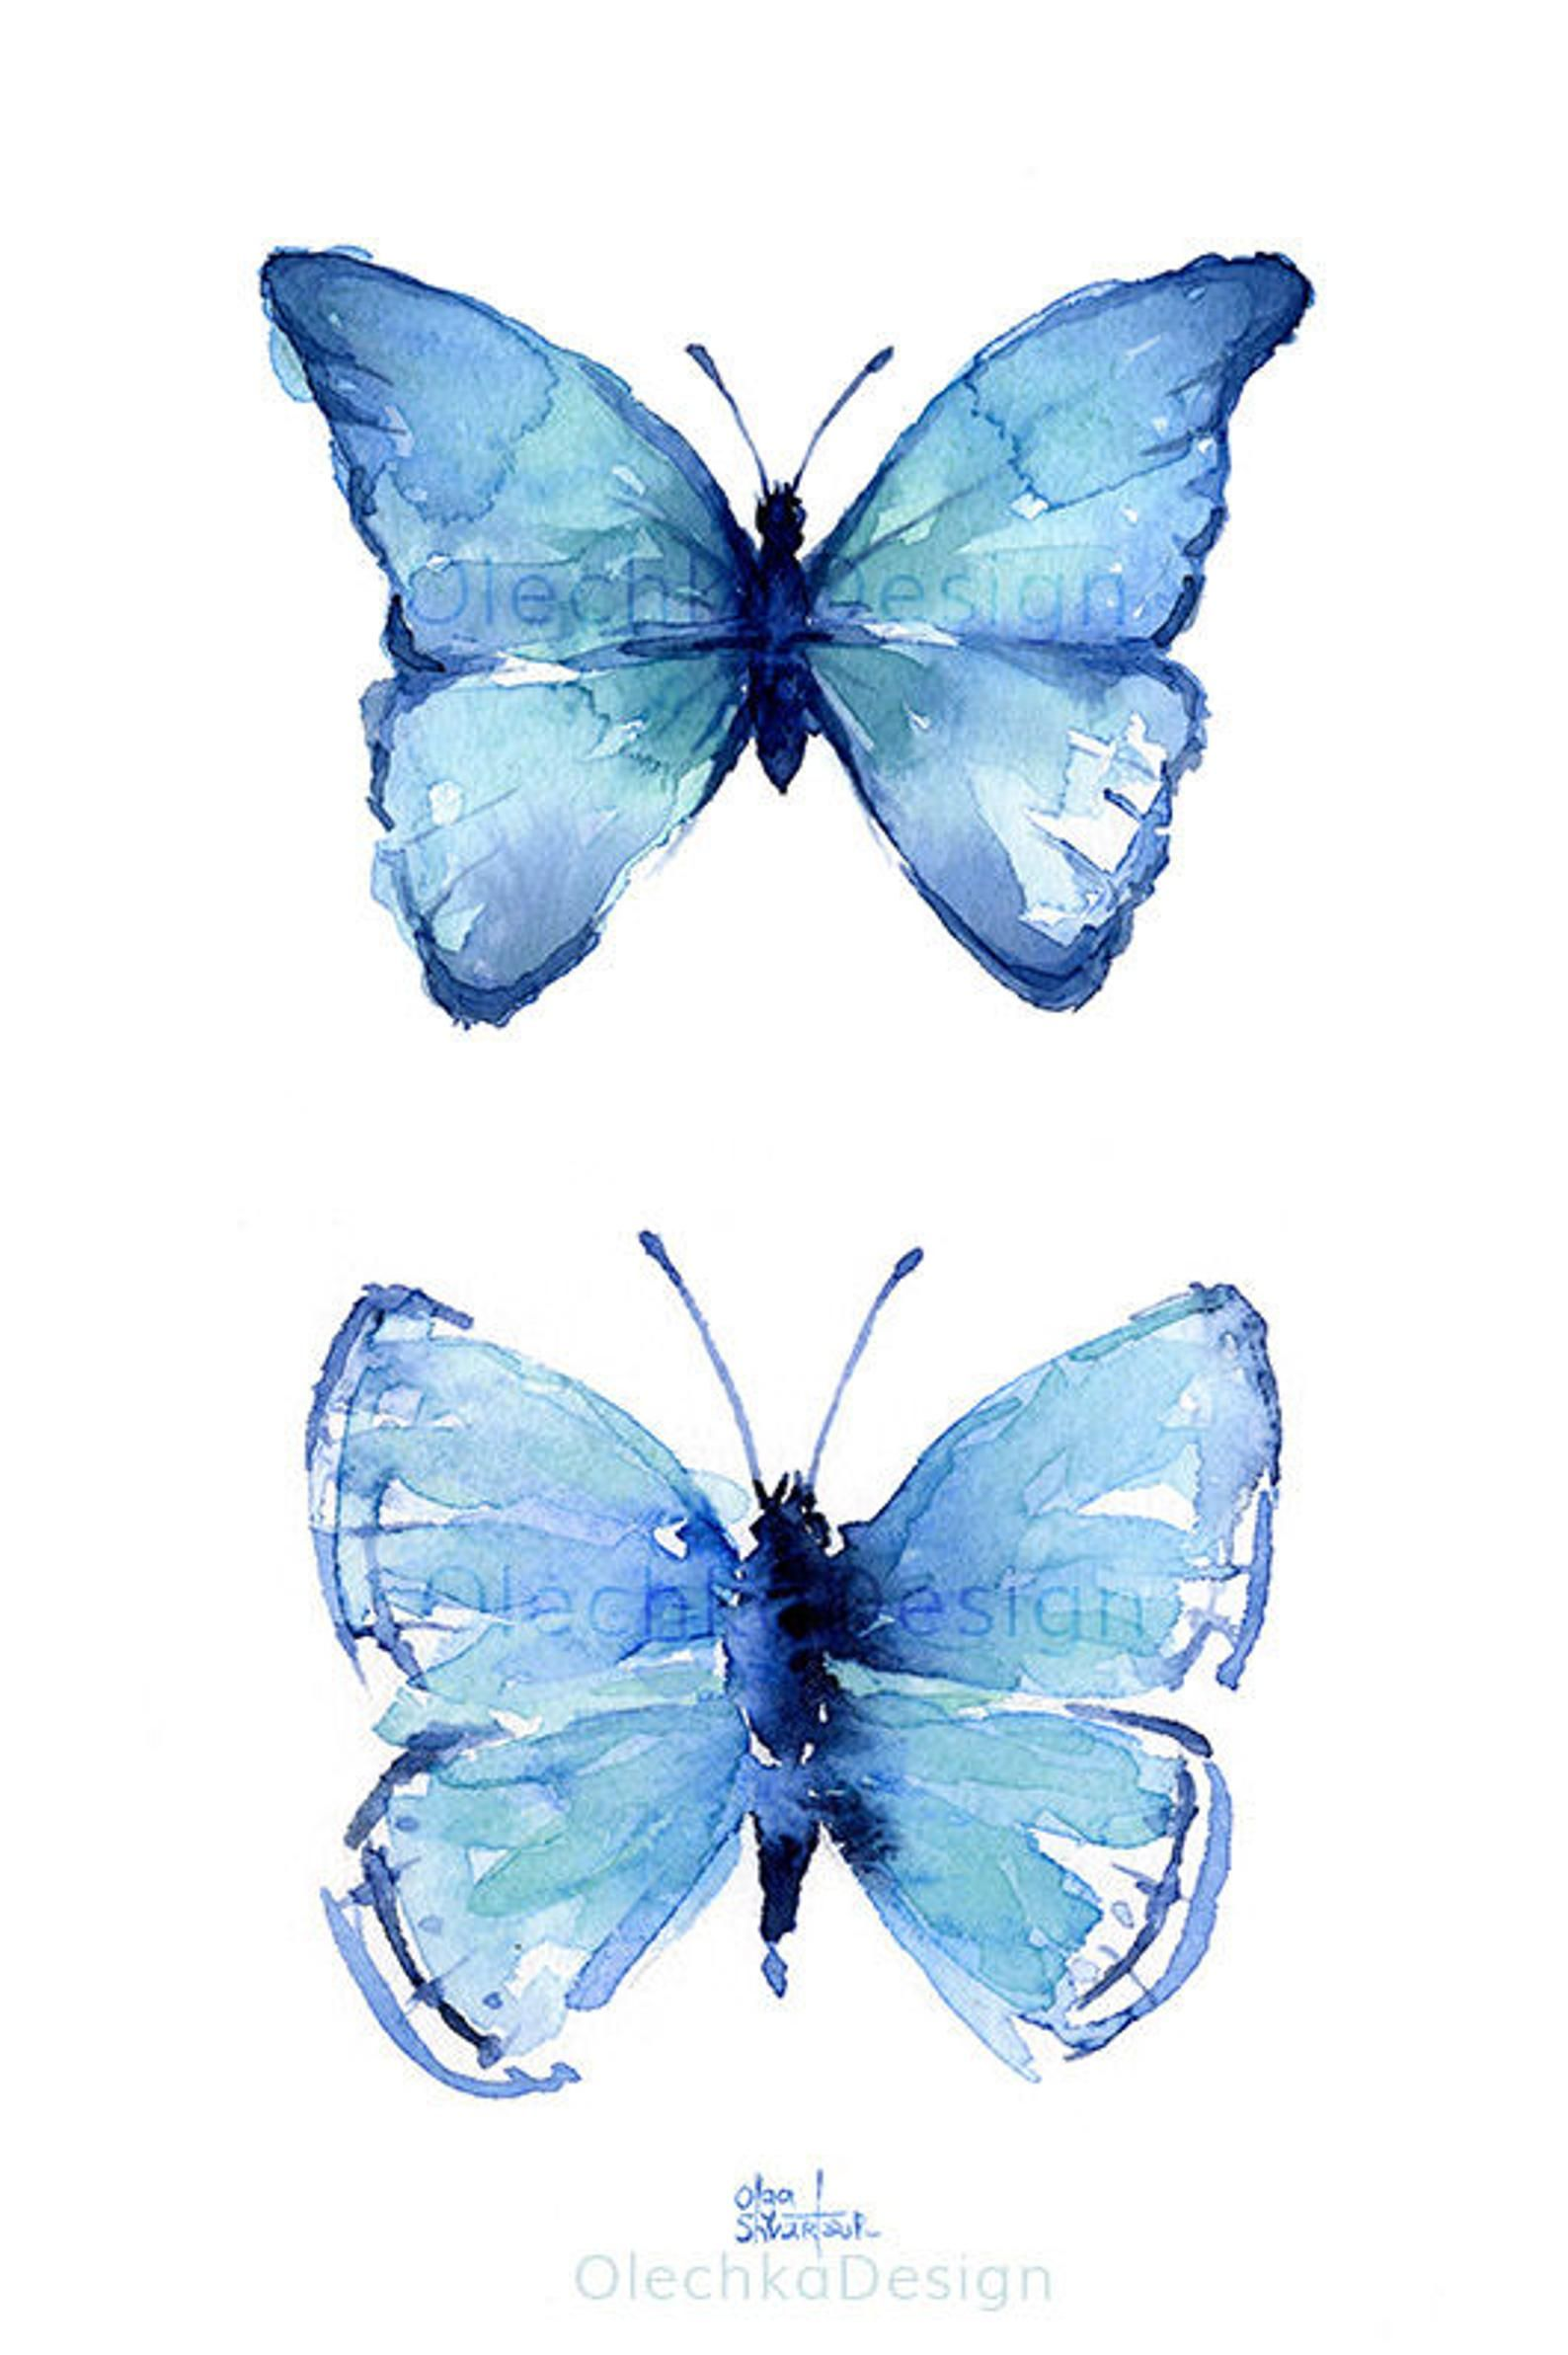 Butterfly Wall Art Blue Butterflies Watercolor Art Print Two